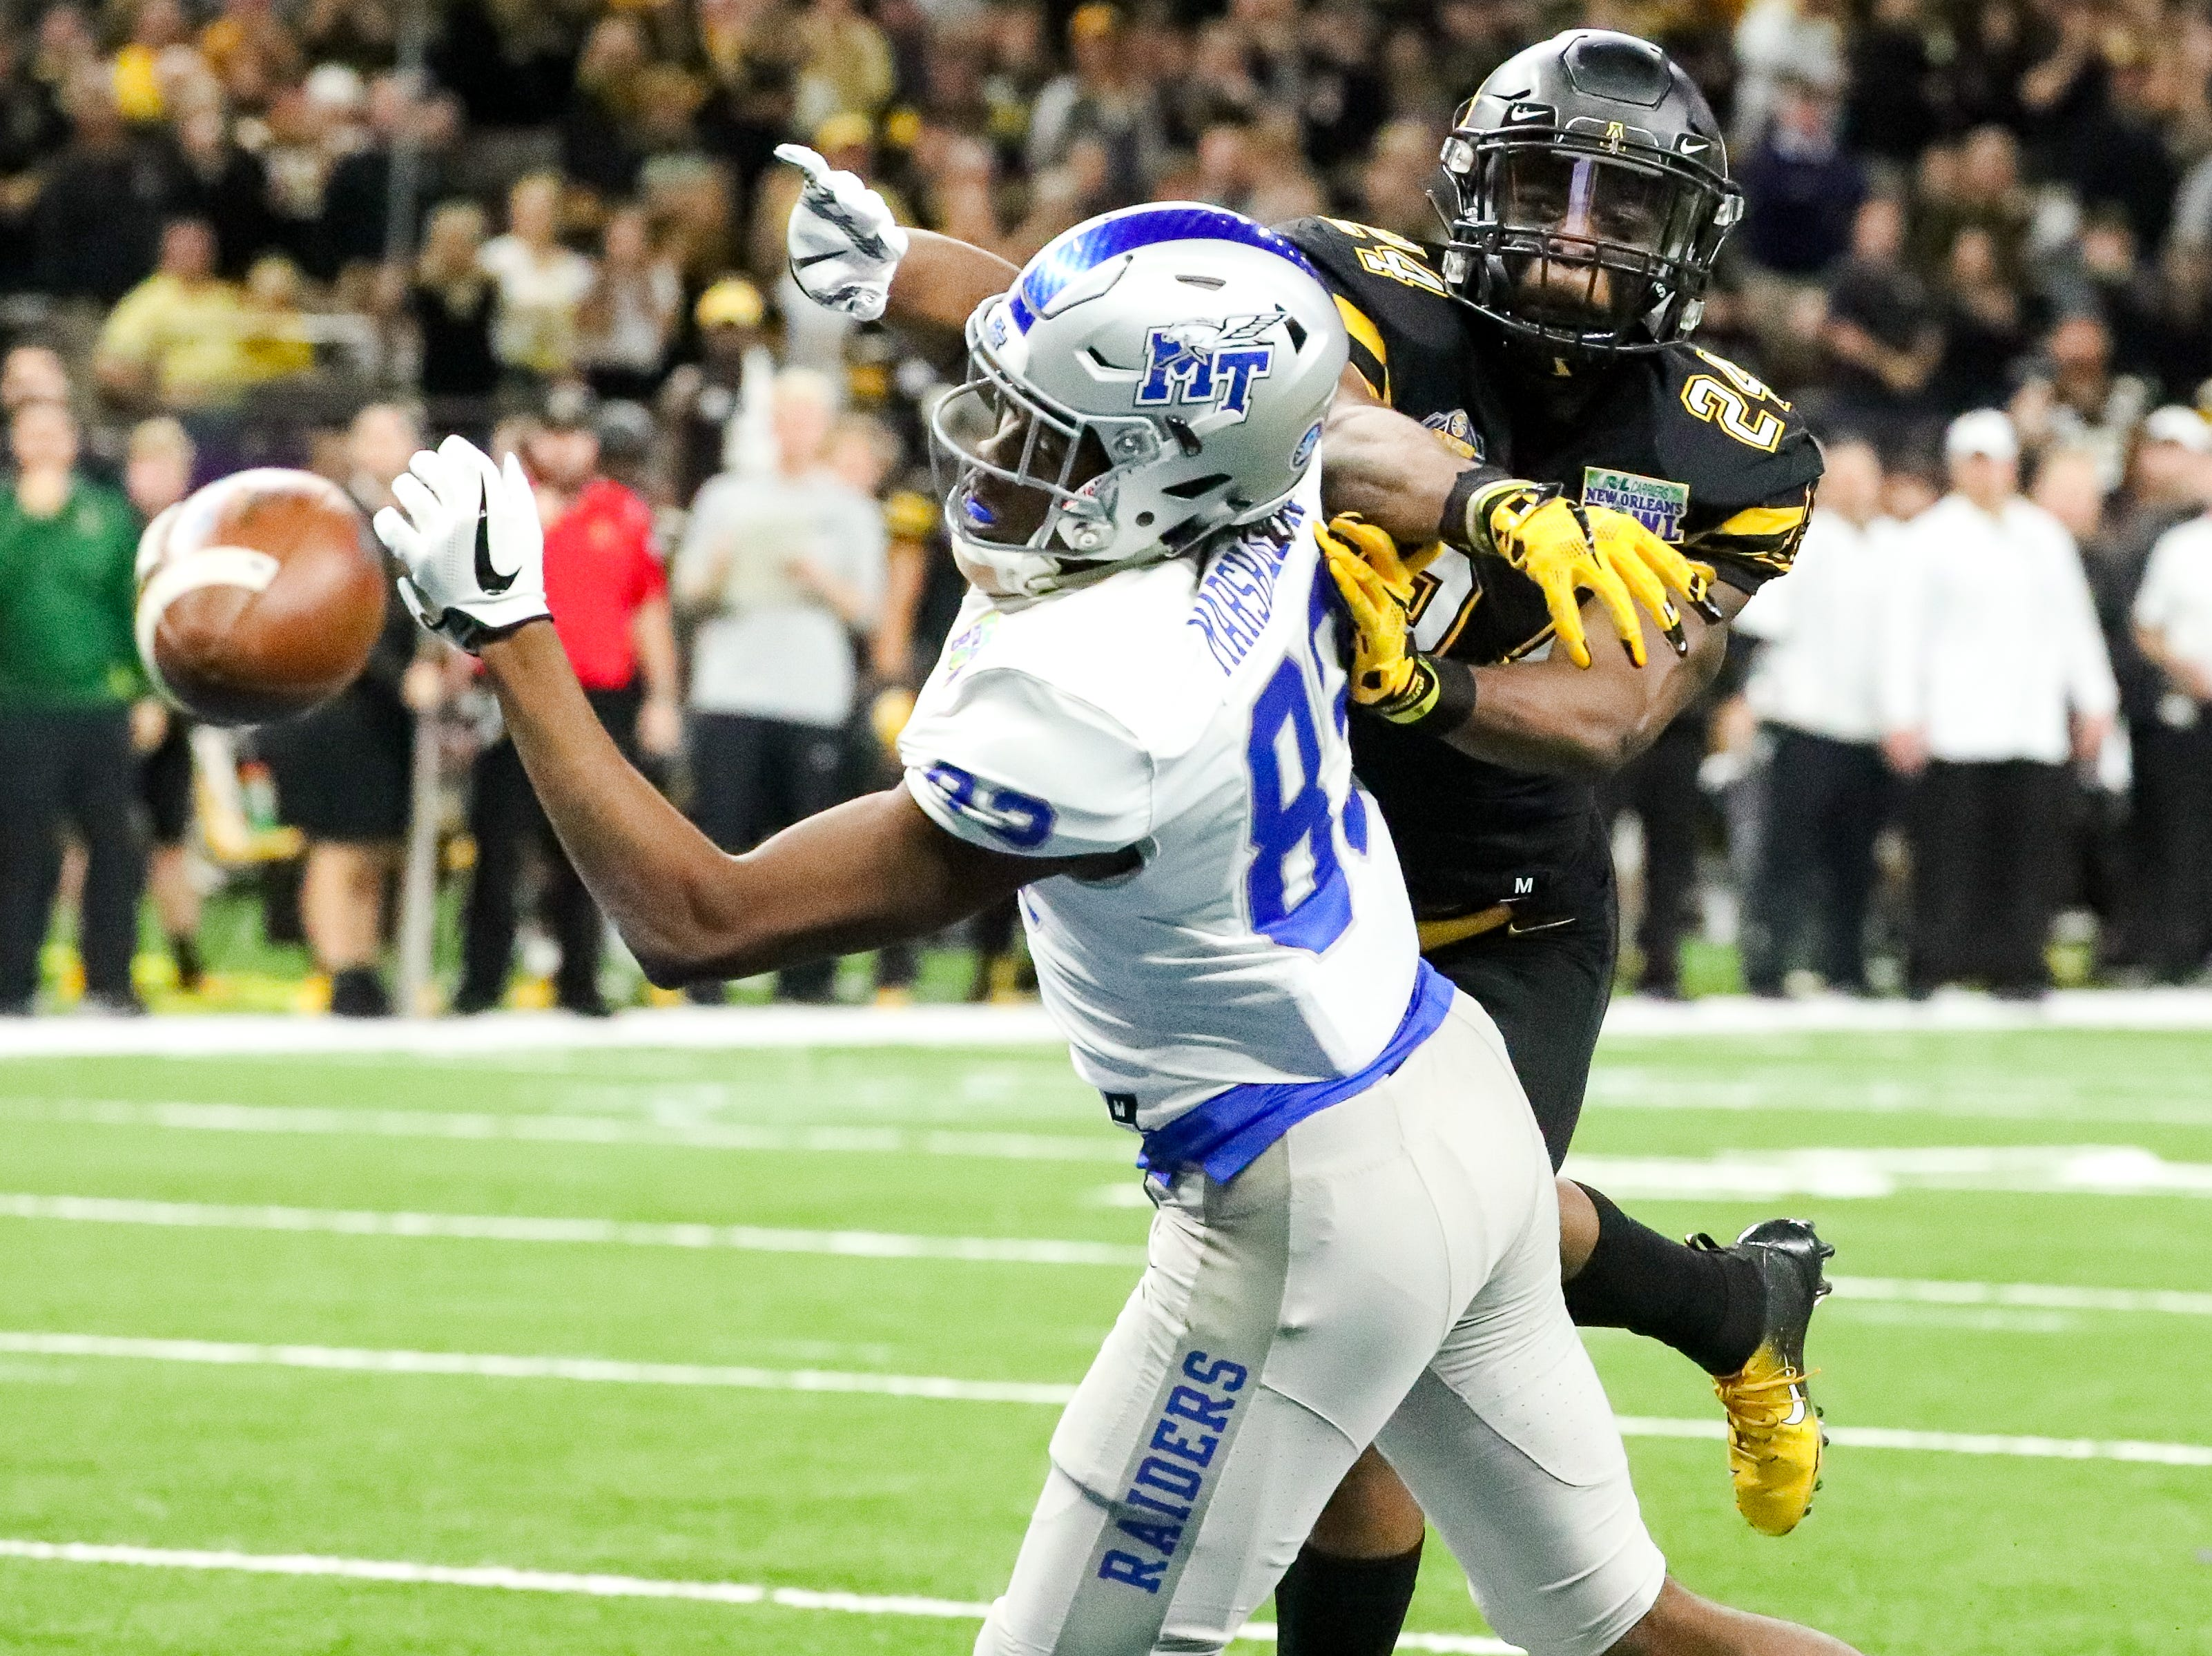 Middle Tennessee Blue Raiders wide receiver Jimmy Marshall (83) misses a catch with pressure from Appalachian State Mountaineers linebacker Akeem Davis-Gaither (24) during the first half at the Mercedes-Benz Superdome Saturday, Dec. 15, 2018, in New Orleans, La.